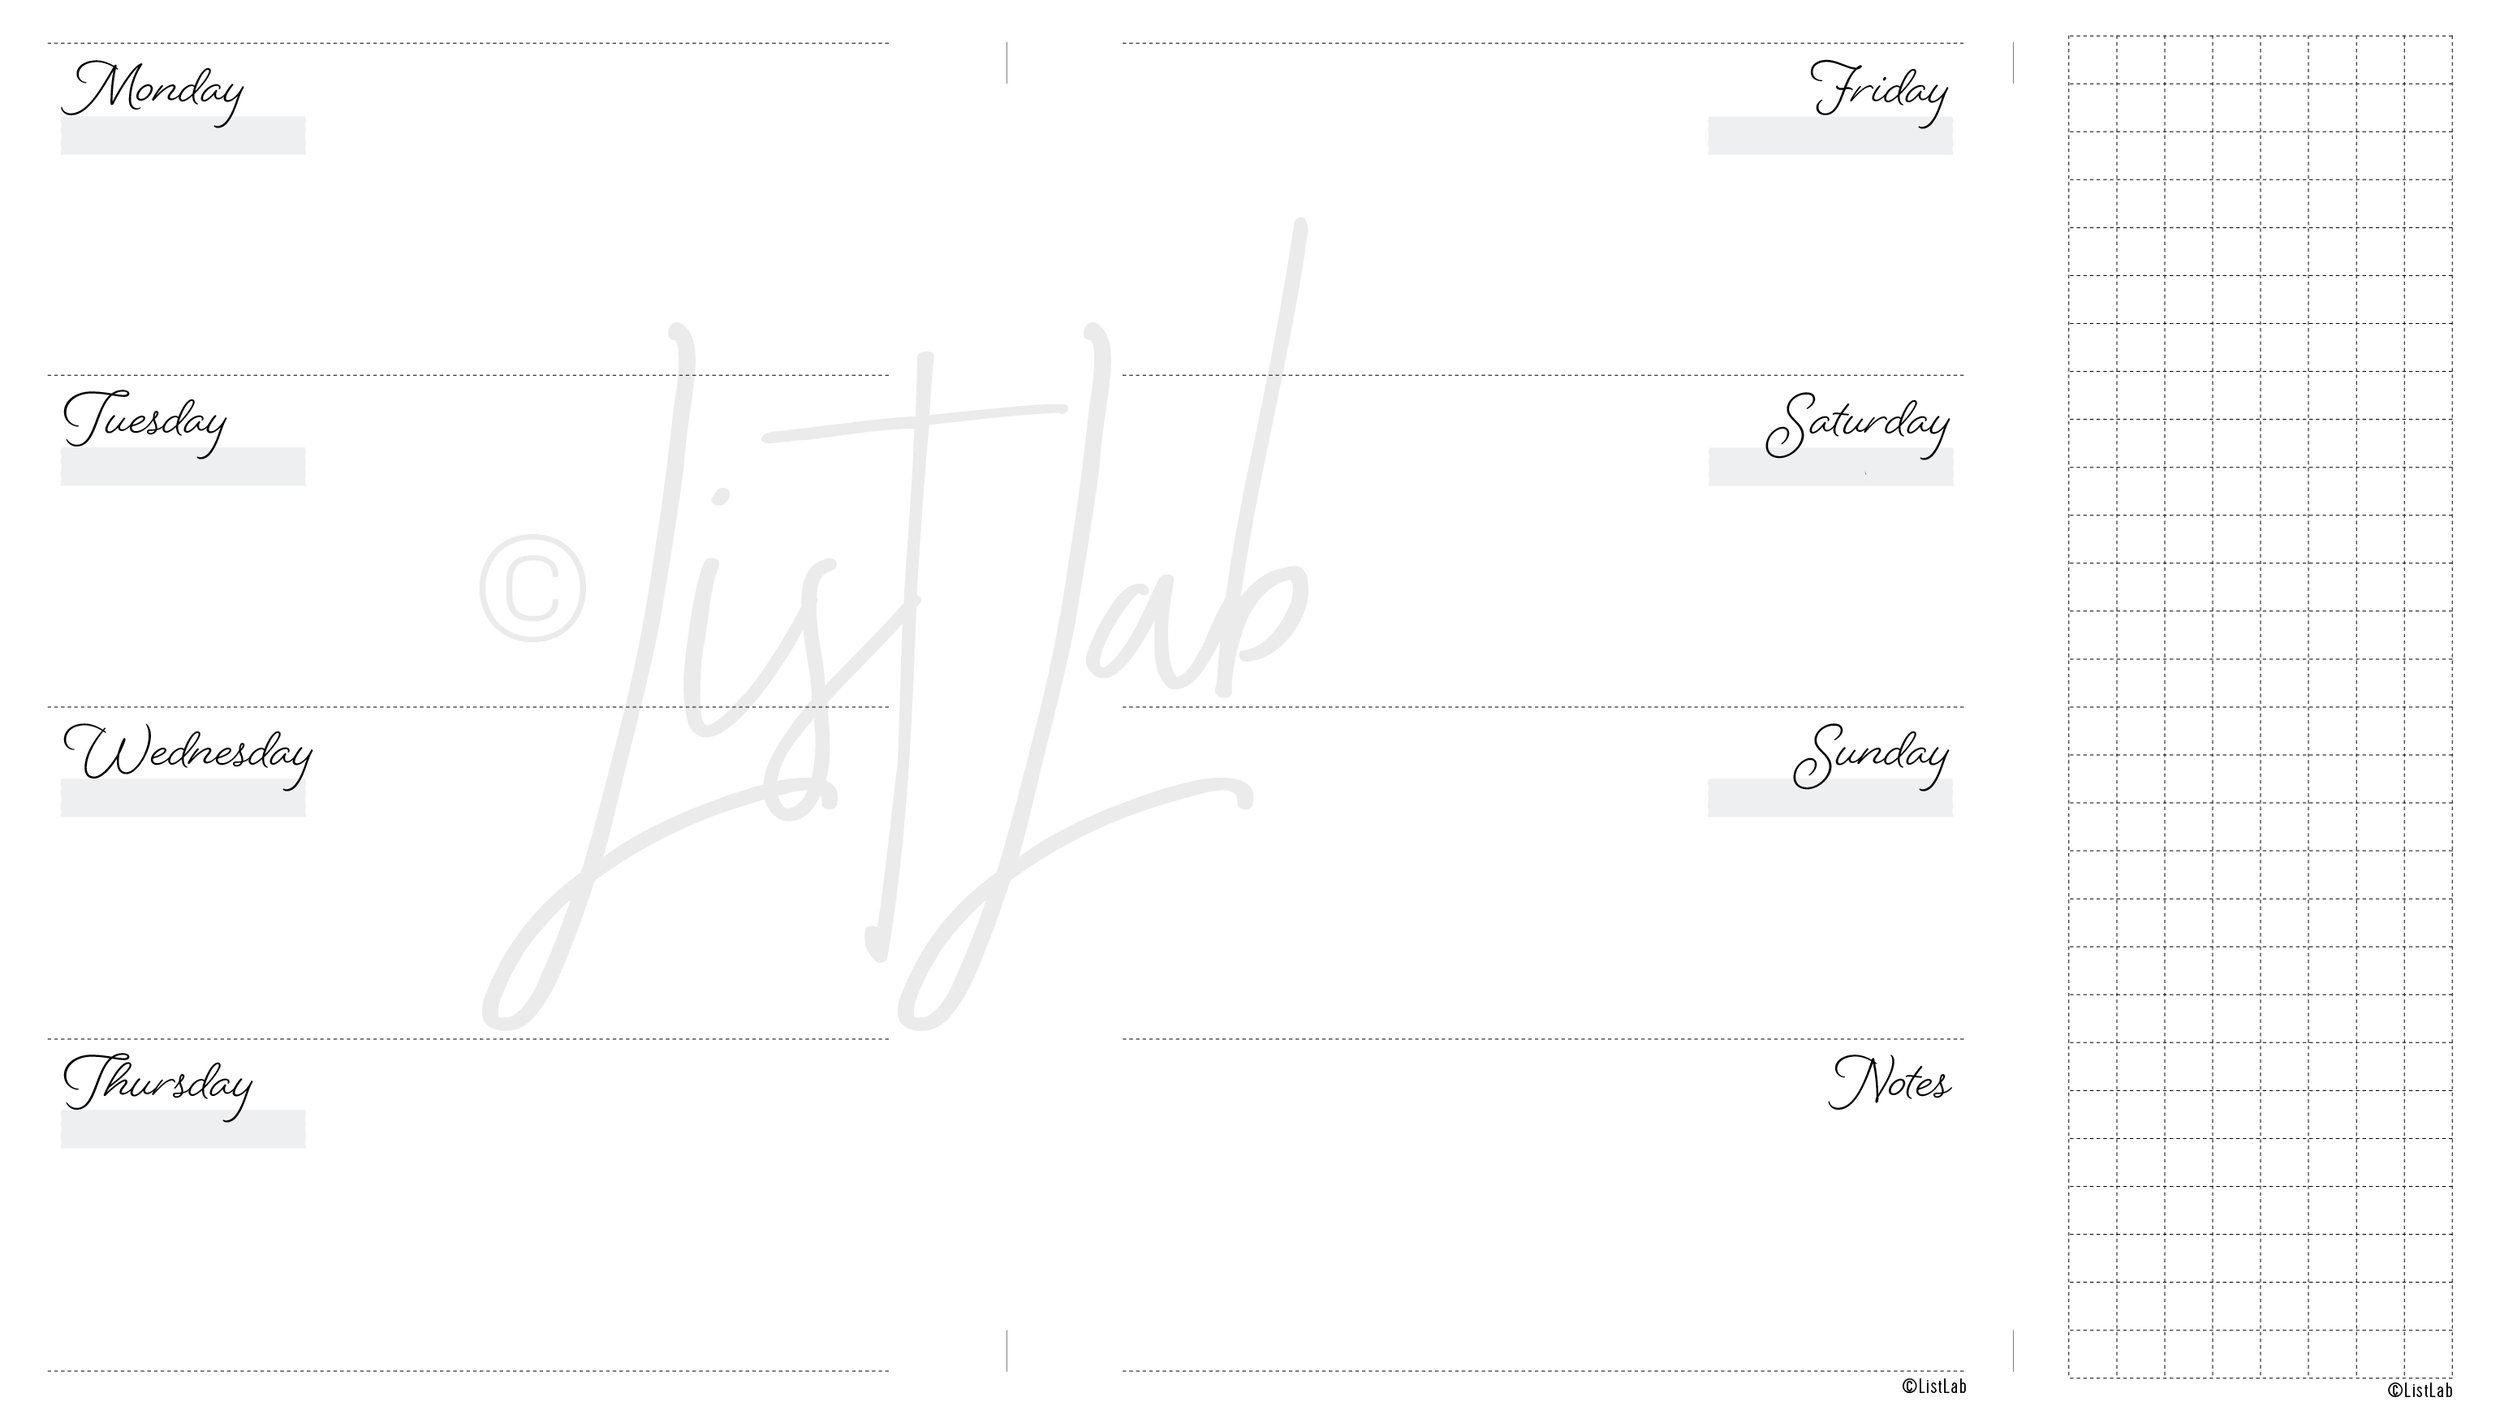 script_ring_a6_fold out-01.jpg